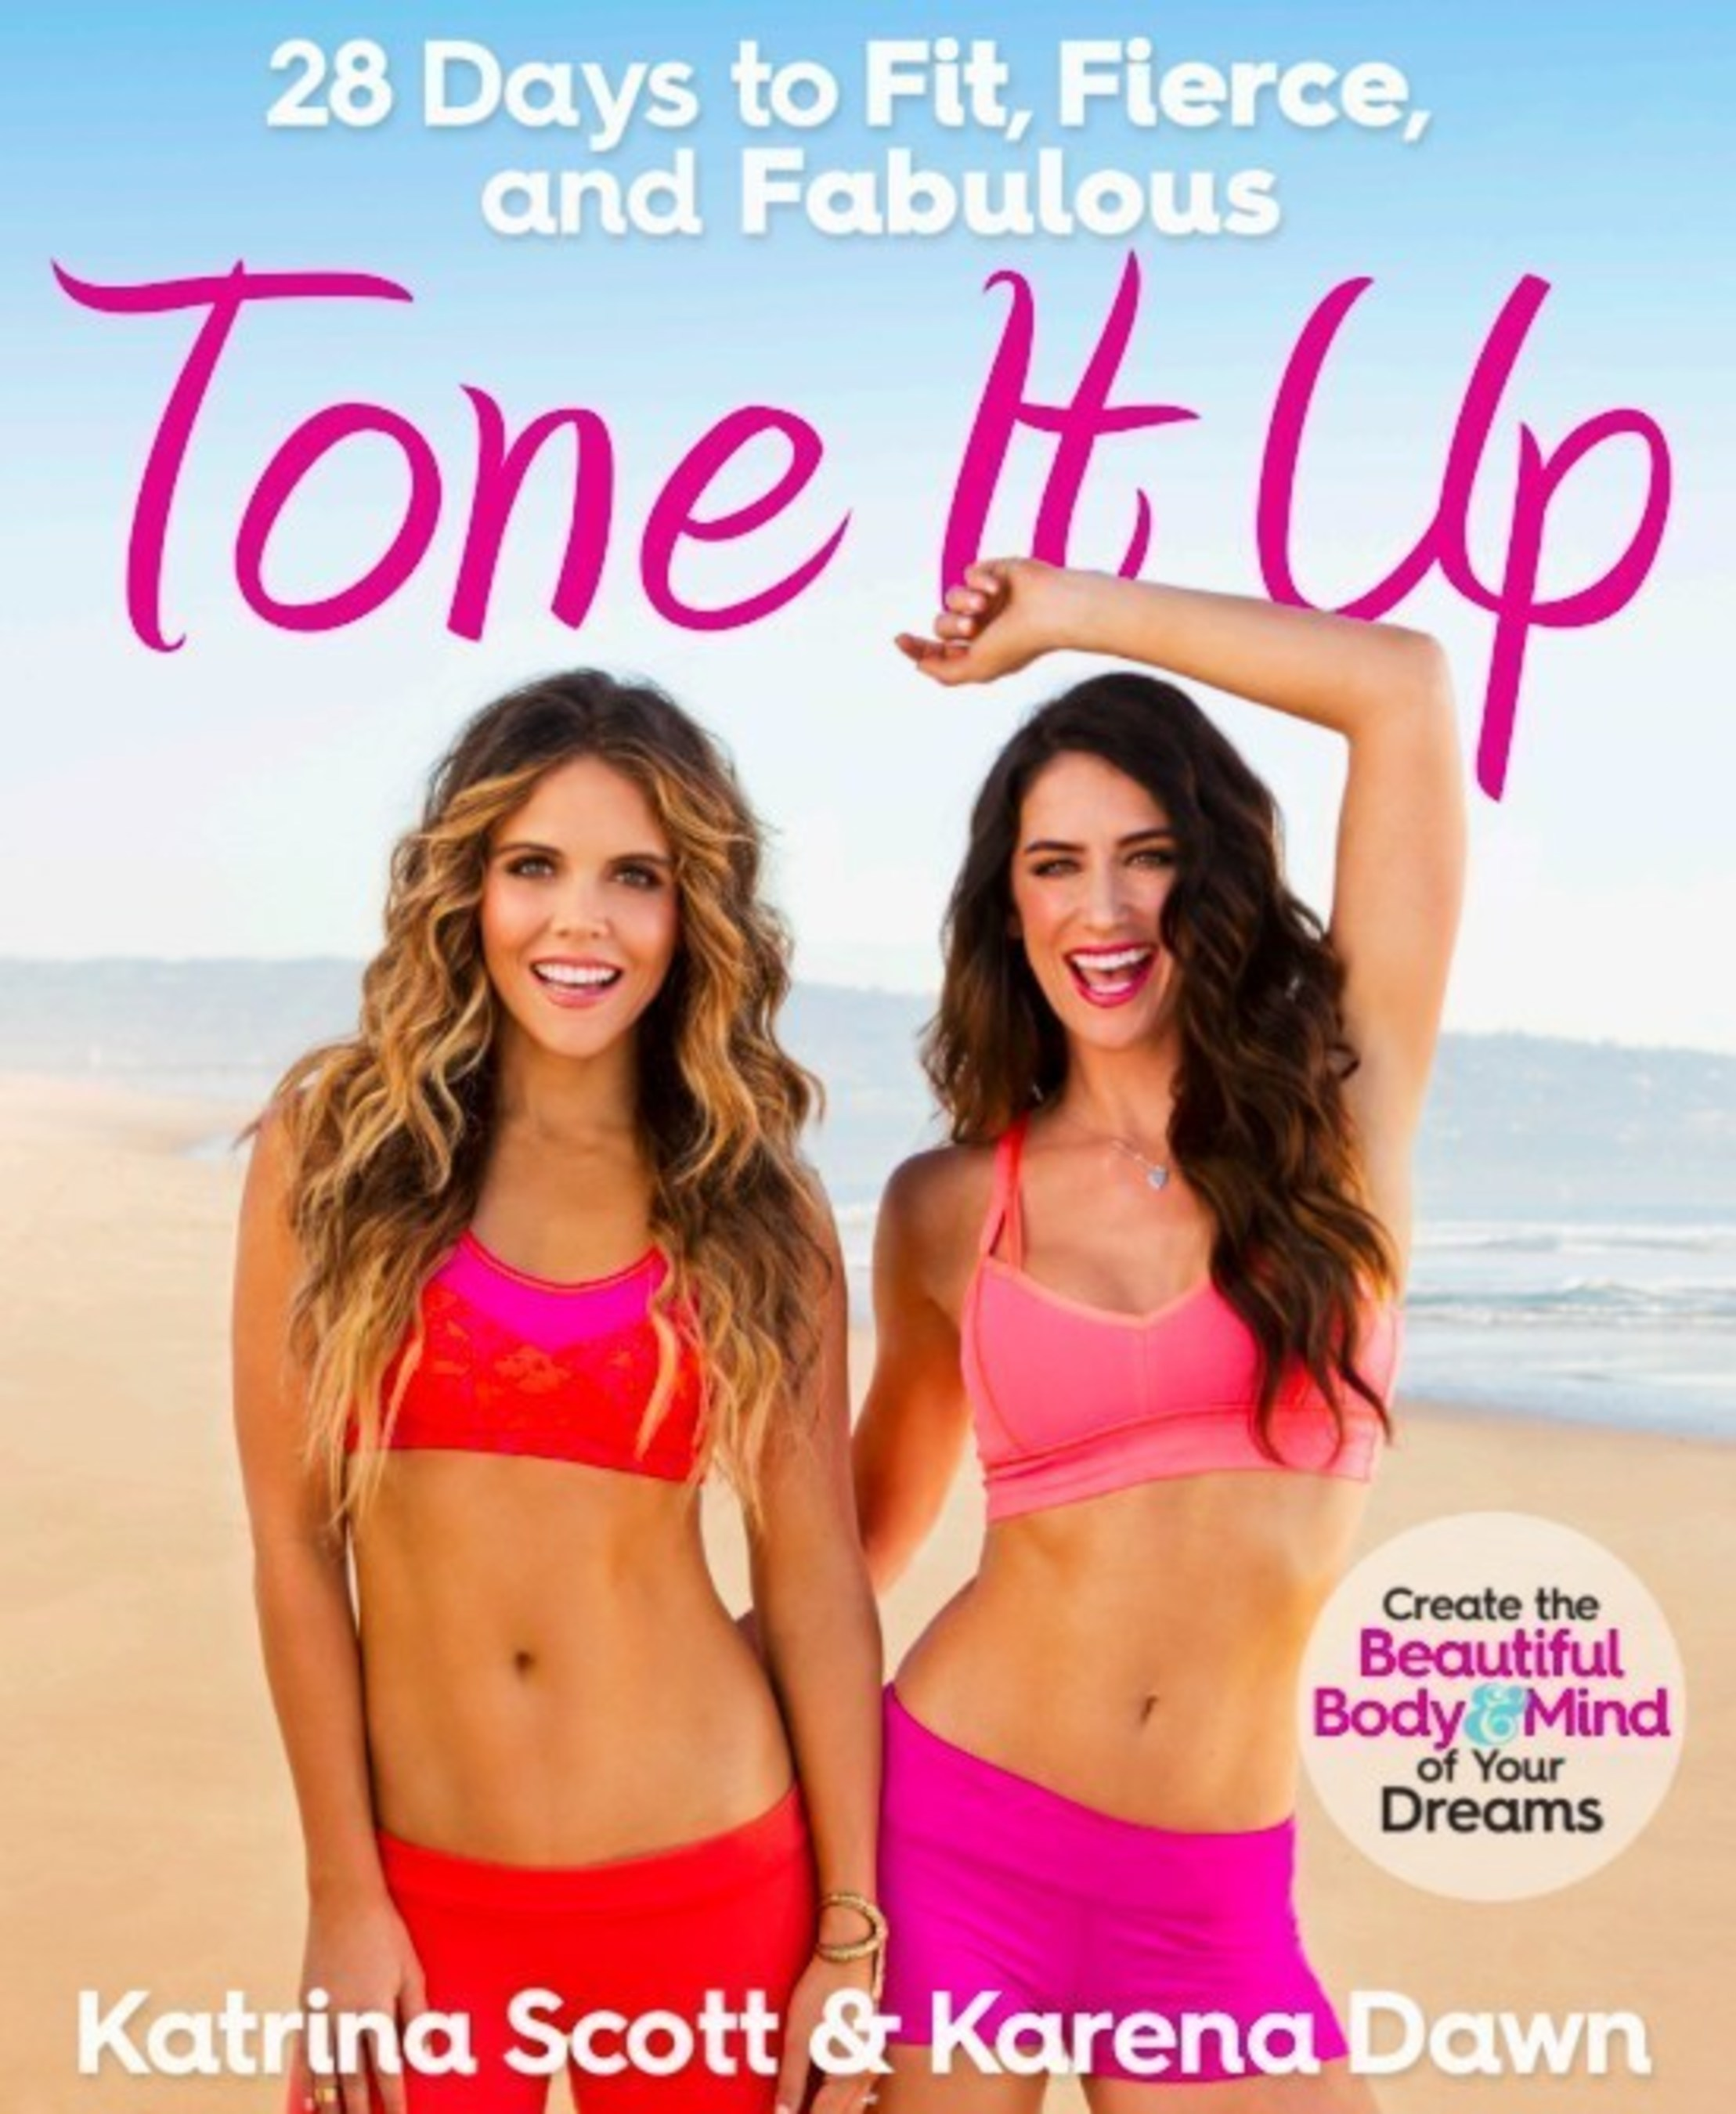 'TONE IT UP: 28 Days to Fit, Fierce, and Fabulous' By Katrina Scott & Karena Dawn On Rodale Books Available In Stores And Digitally Now